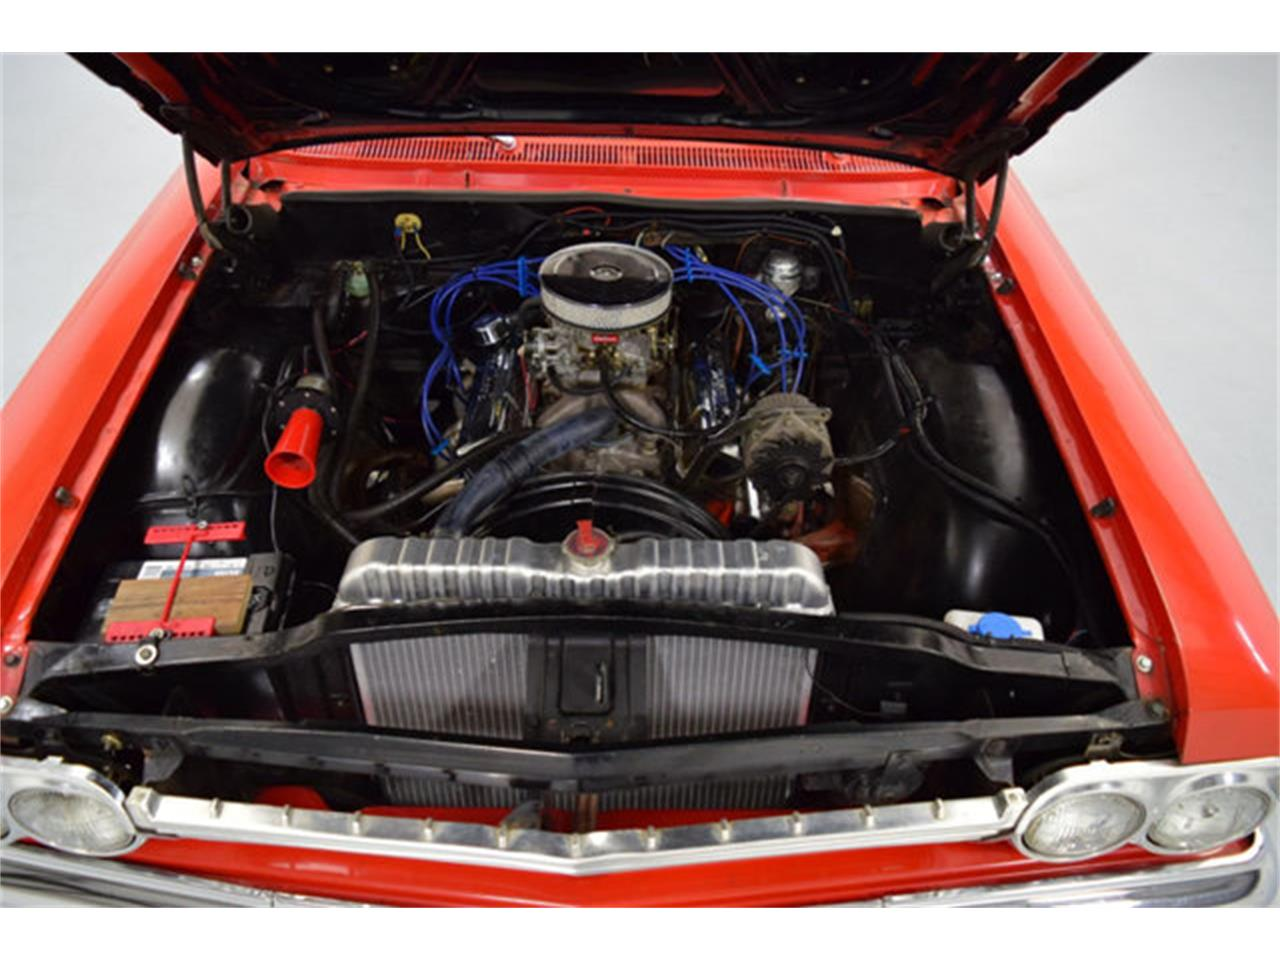 Large Picture of 1962 Chevrolet Biscayne located in North Carolina - $15,995.00 - L7HW